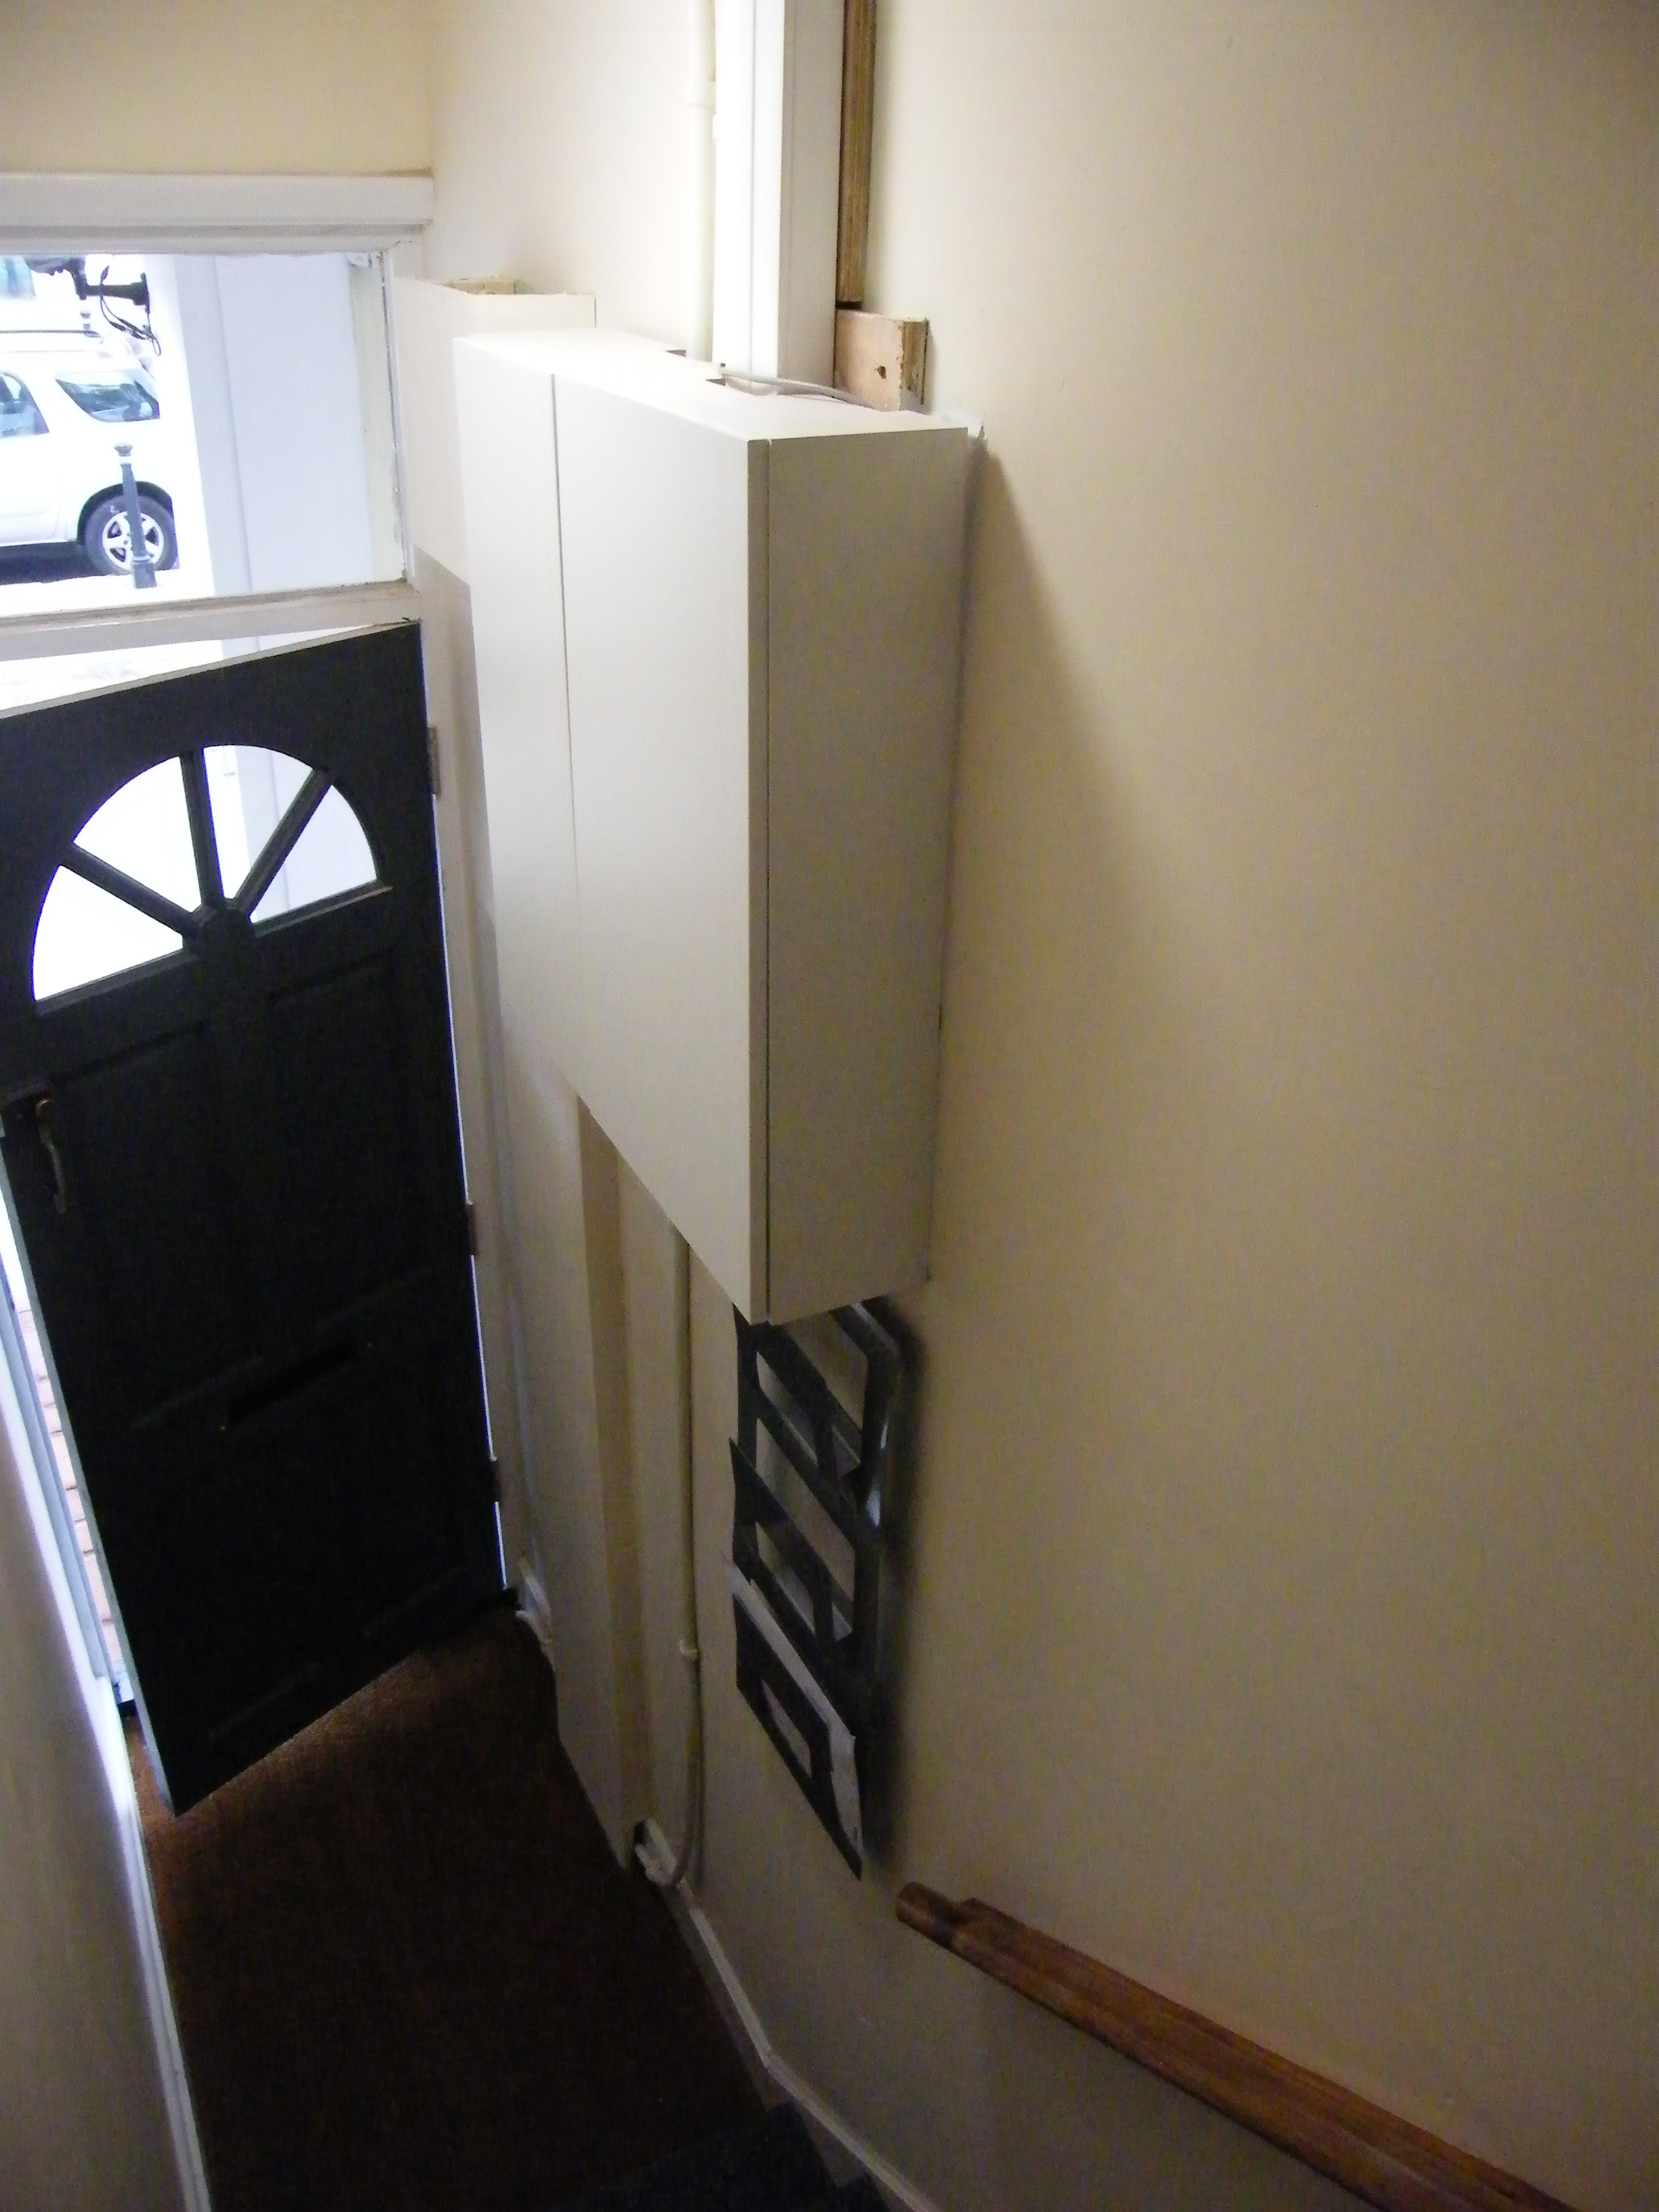 Case Study Complete Rewiring Of 52a Goring Road Worthing Pme A Room Electrics Hallway Cupboard